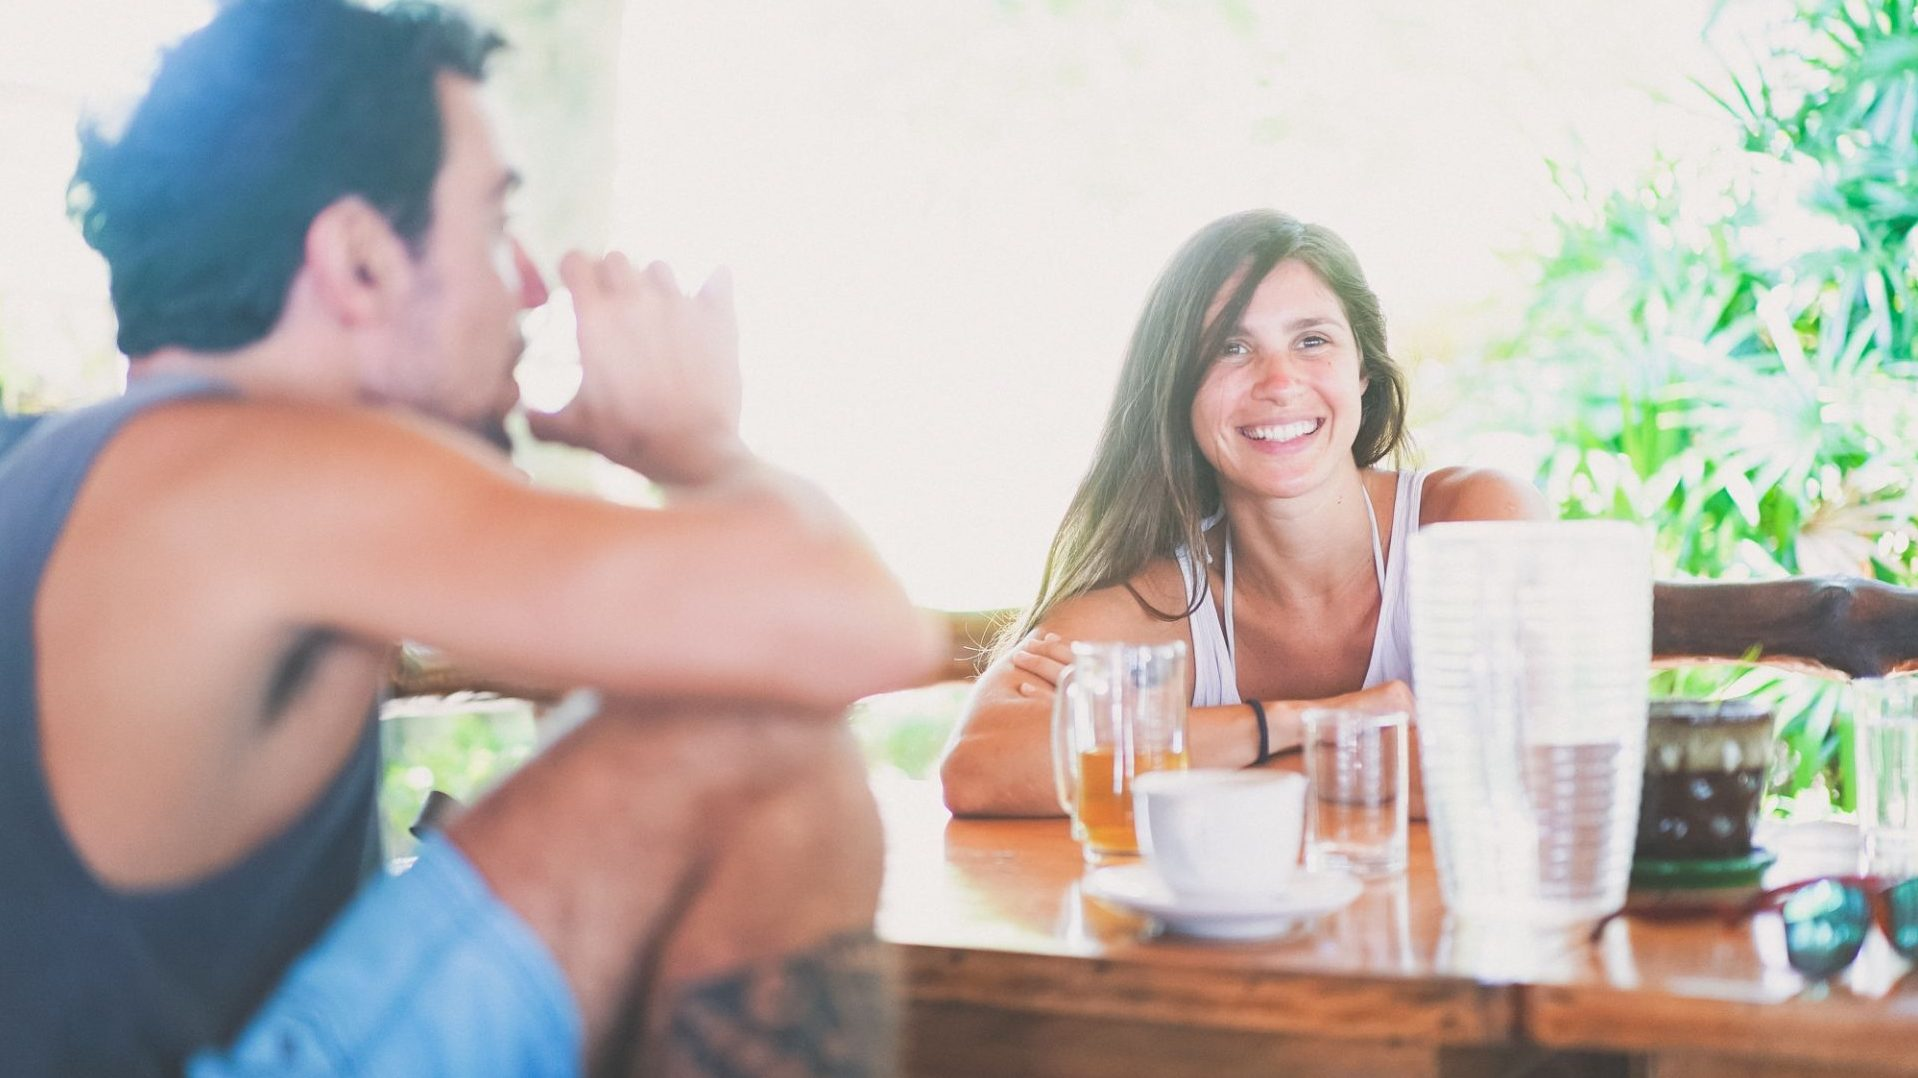 Two people smiling while drinking healthy drinks